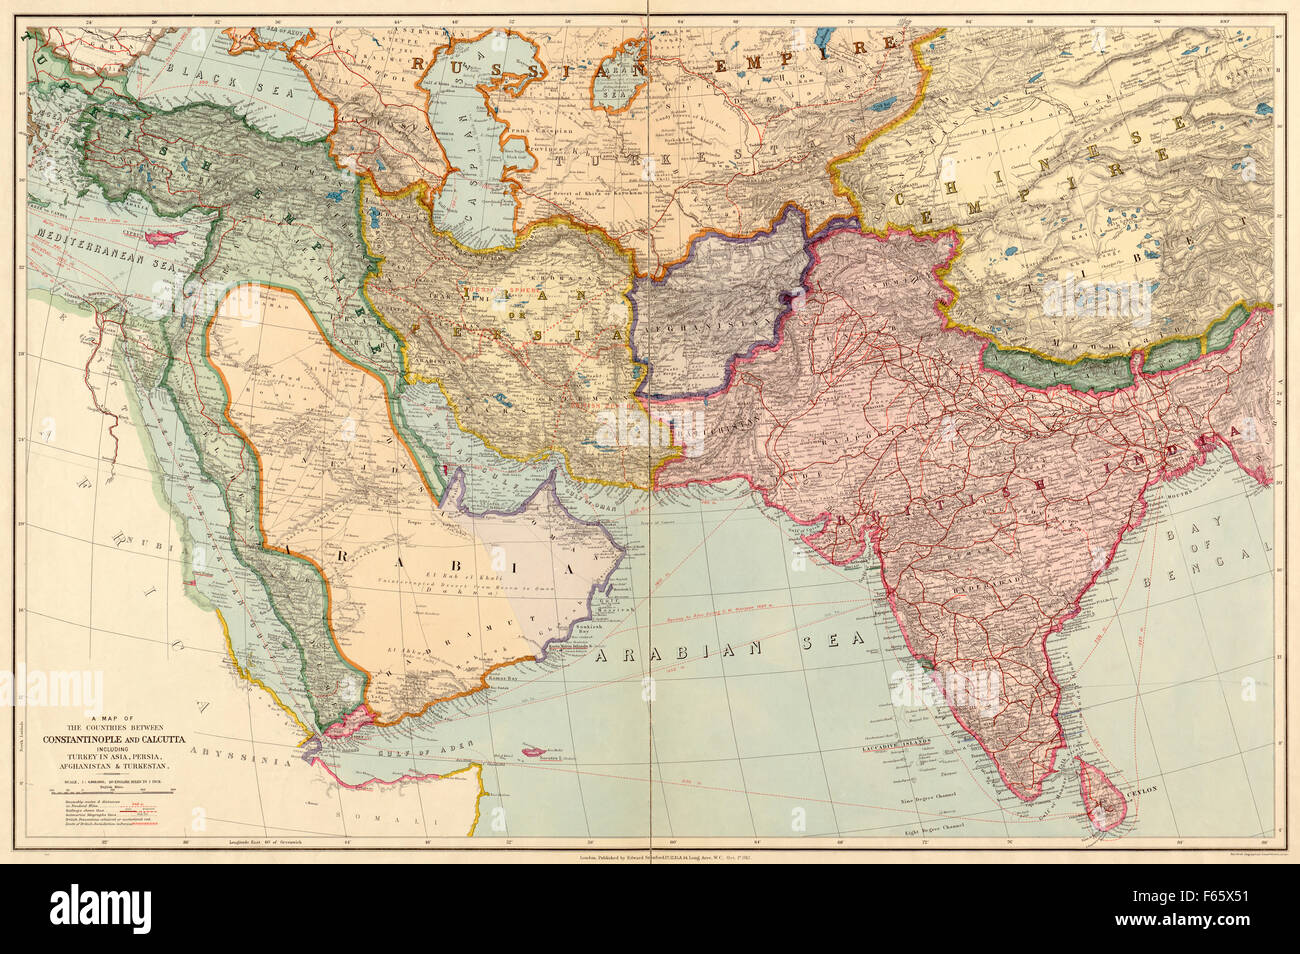 The countries between constantinople and calcutta including turkey constantinople and calcutta including turkey in asia persia afghanistan and turkestan middle east and indian subcontinent pre world war one map gumiabroncs Choice Image